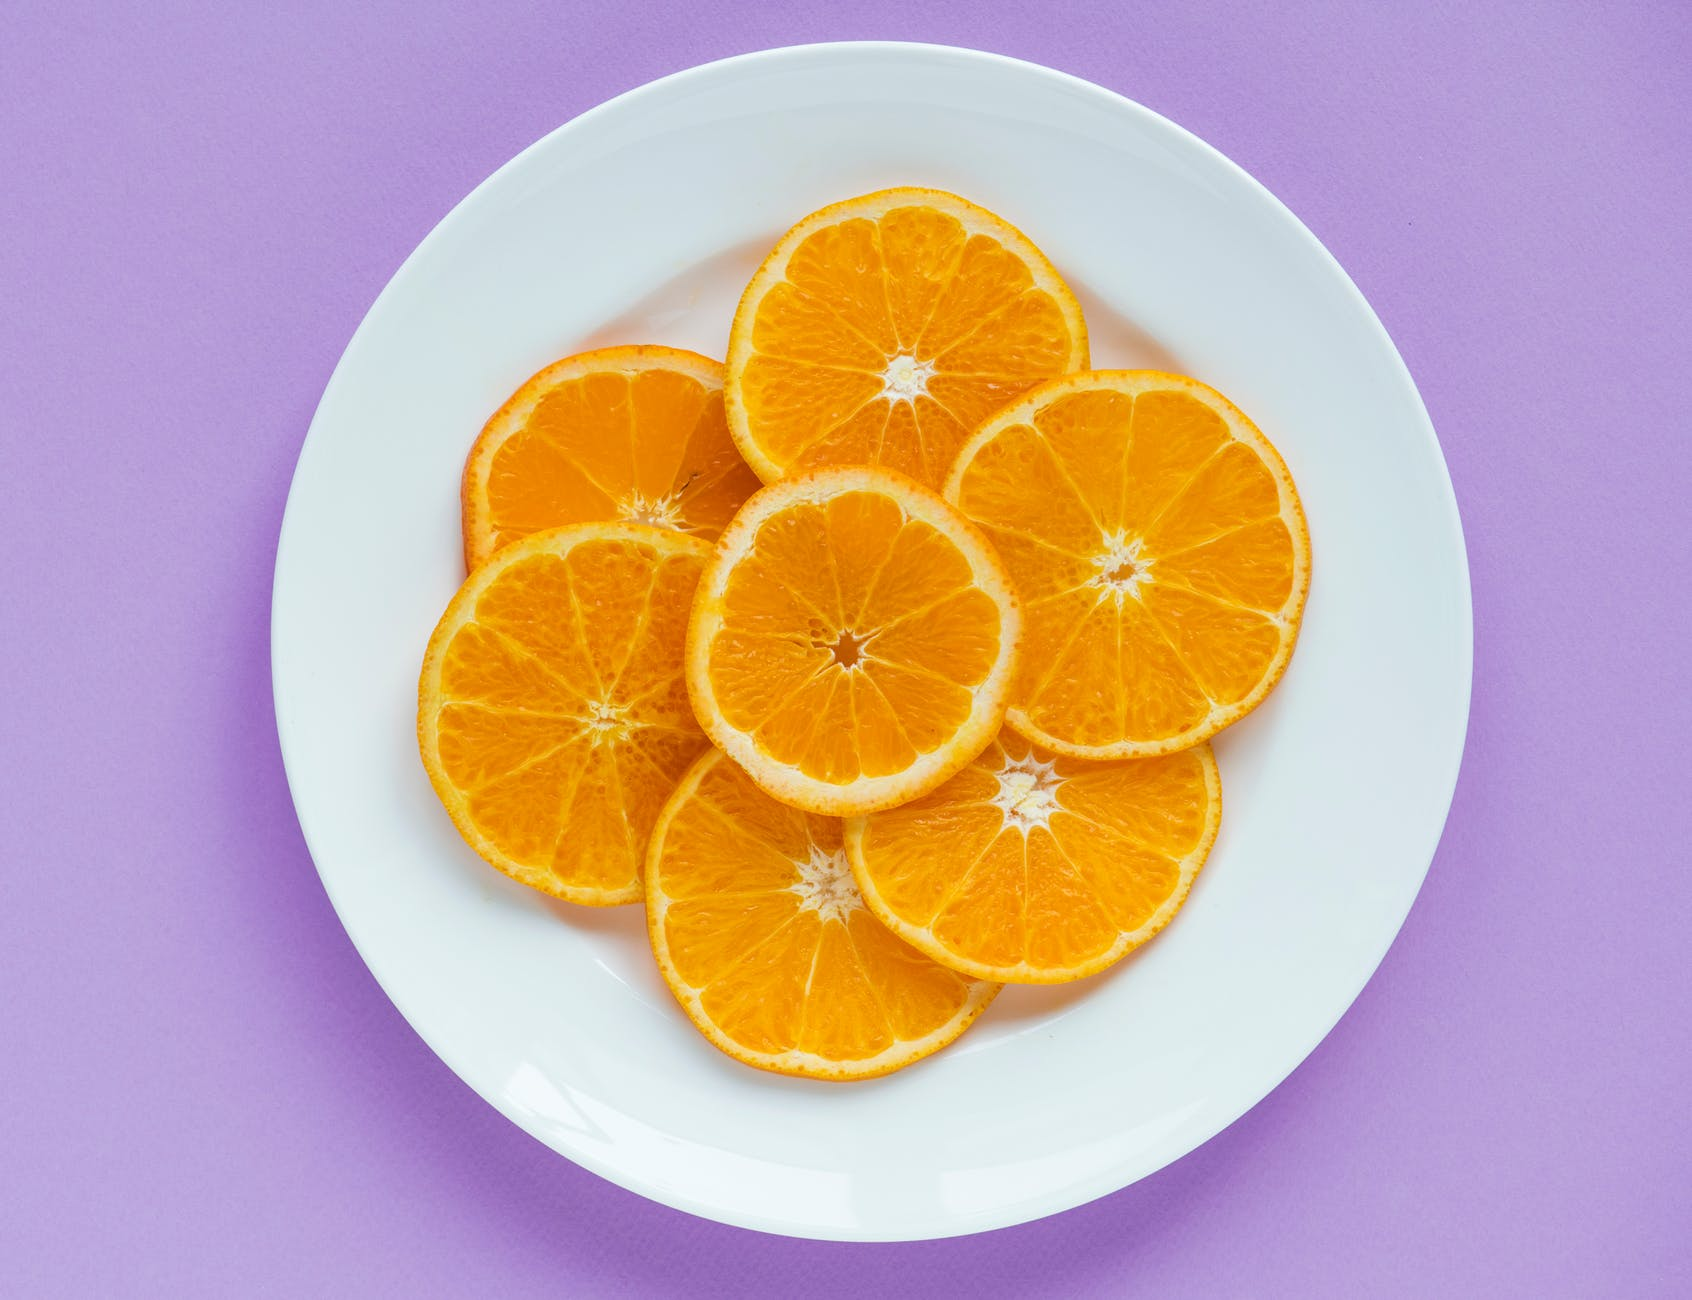 sliced orange fruits on round white ceramic plate